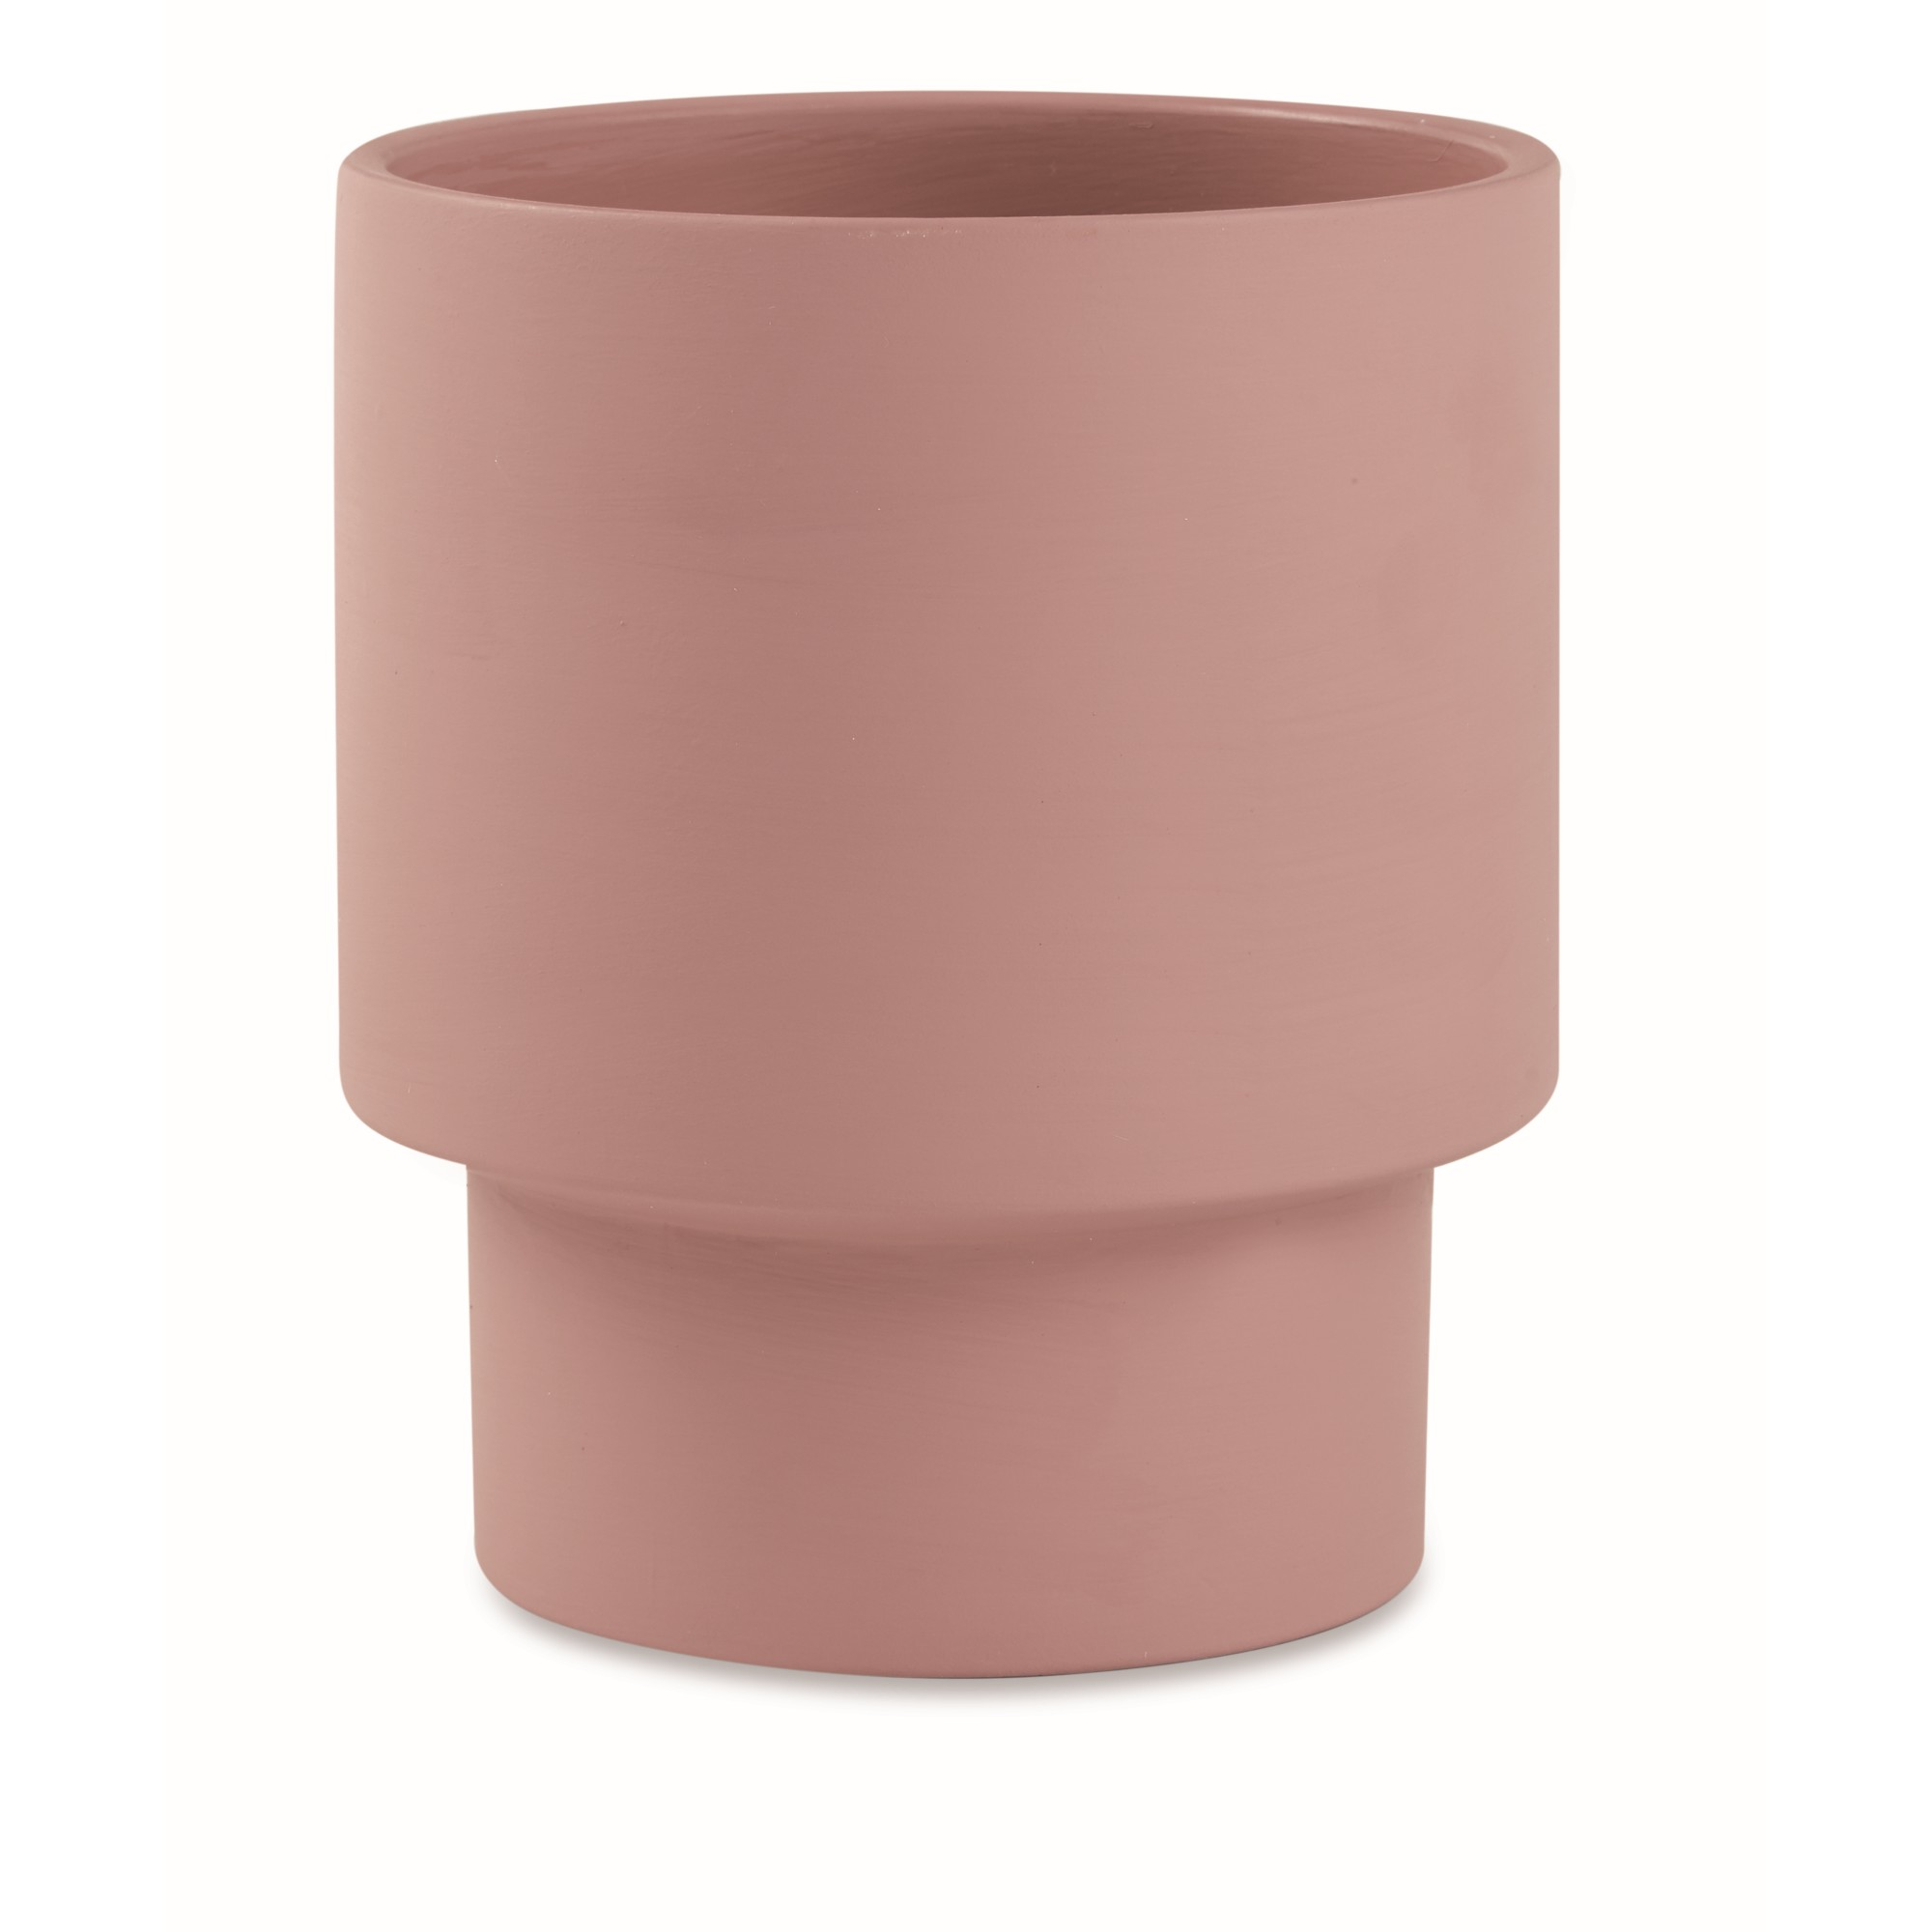 Cachepot Cimento Rose 195x17 cm 12322 - Mart Decor